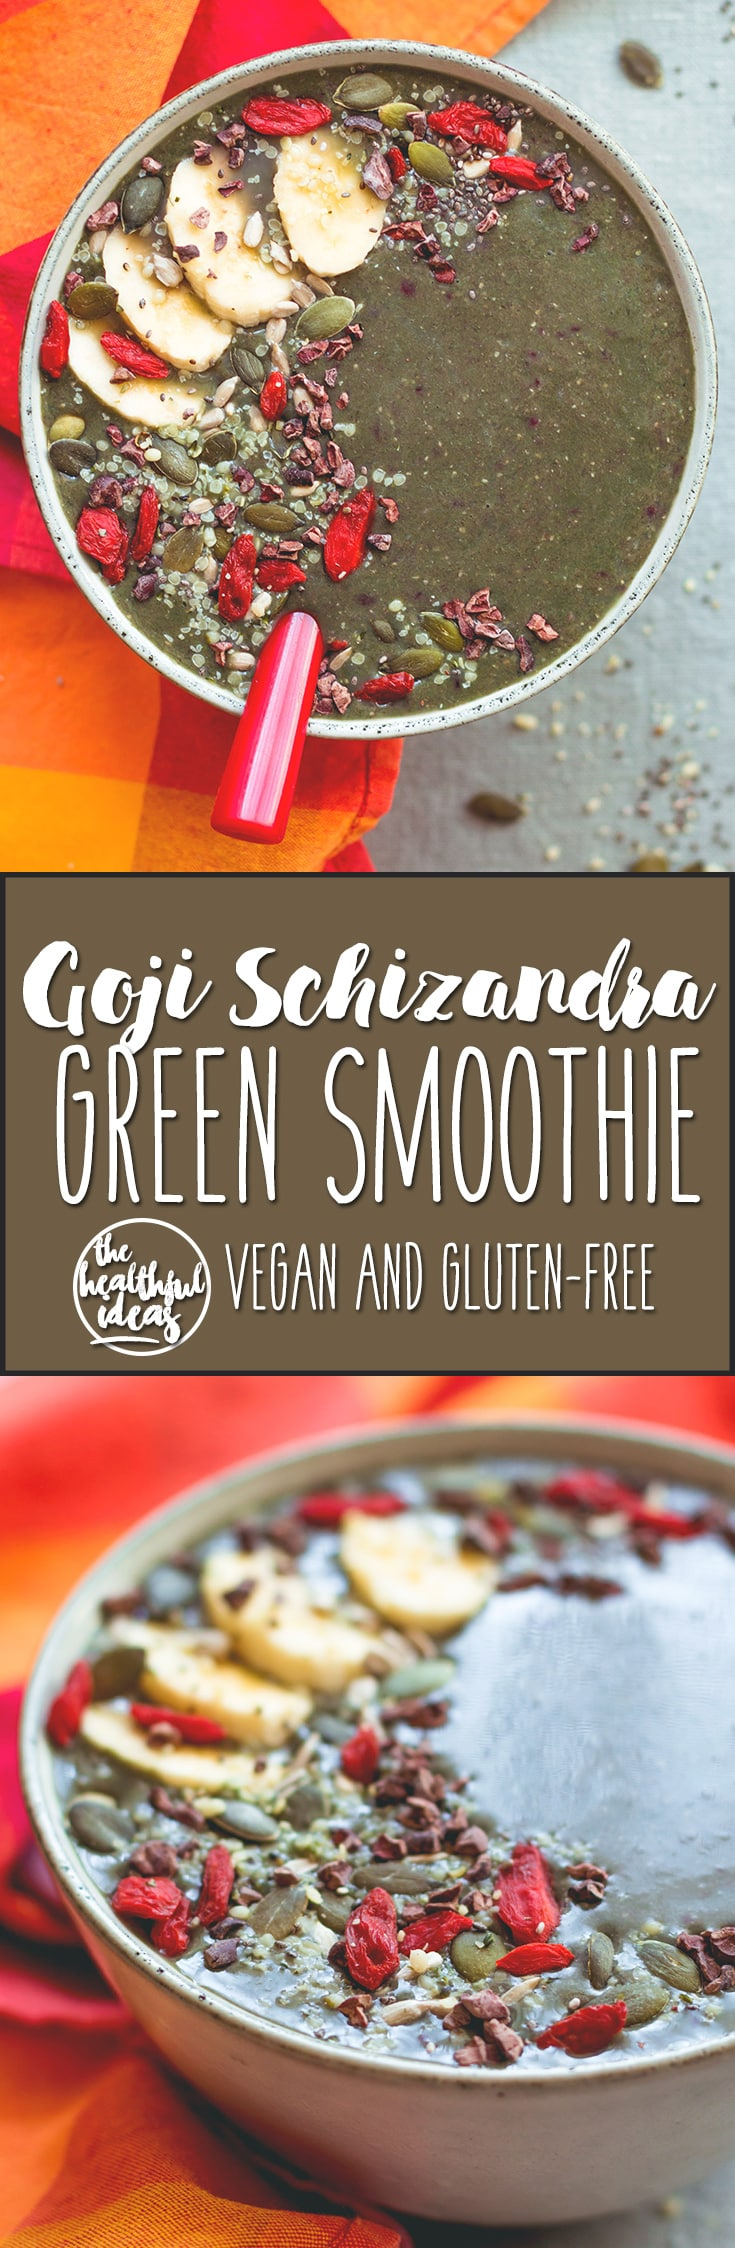 Goji Schizandra Green Smoothie - a green smoothie that actually tastes good! Full of antioxidants and all things health. I love this smoothie recipe and you will too! | thehealthfulideas.com